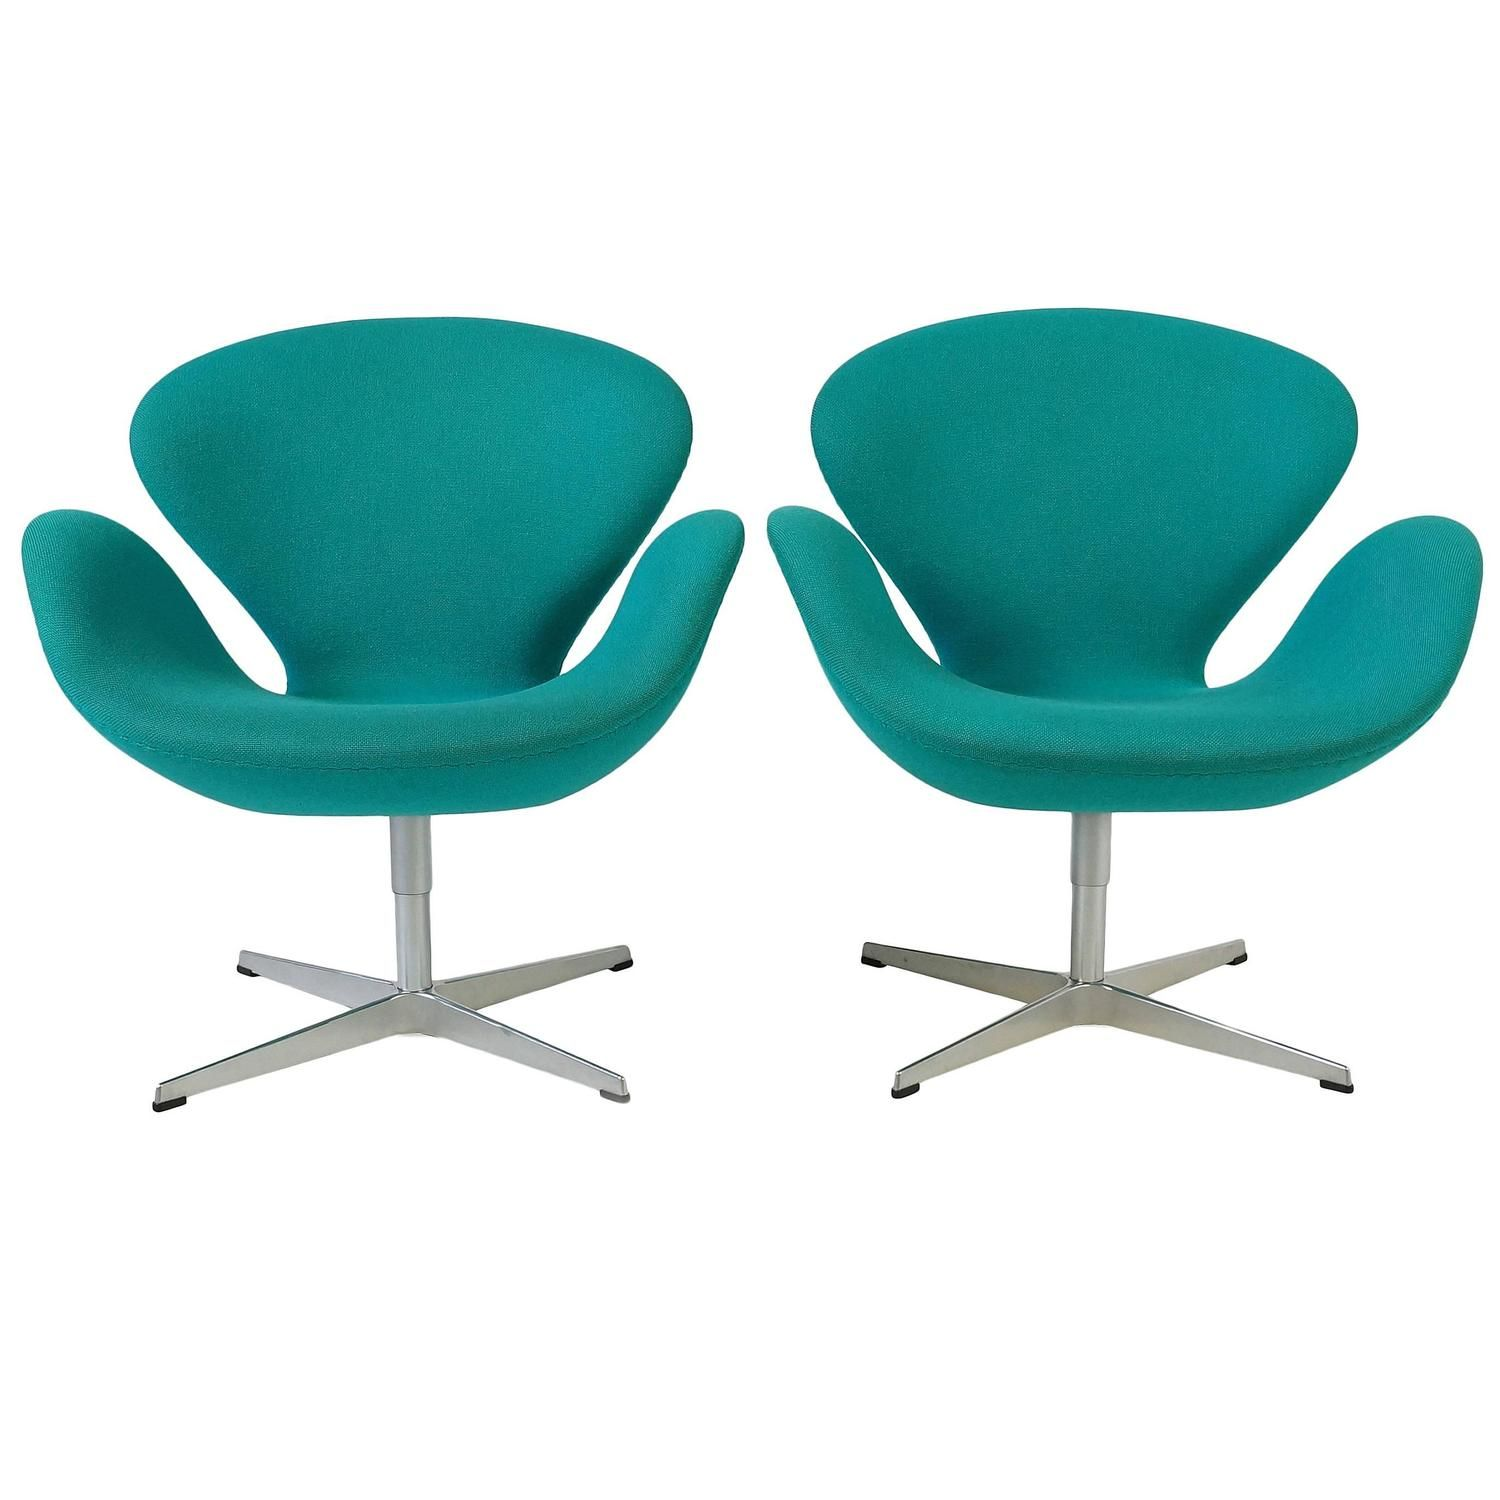 Set Of Two Turquoise Swan Chairs By Arne Jacobsen 1stdibs Com Swan Chair Chair Turquoise Furniture